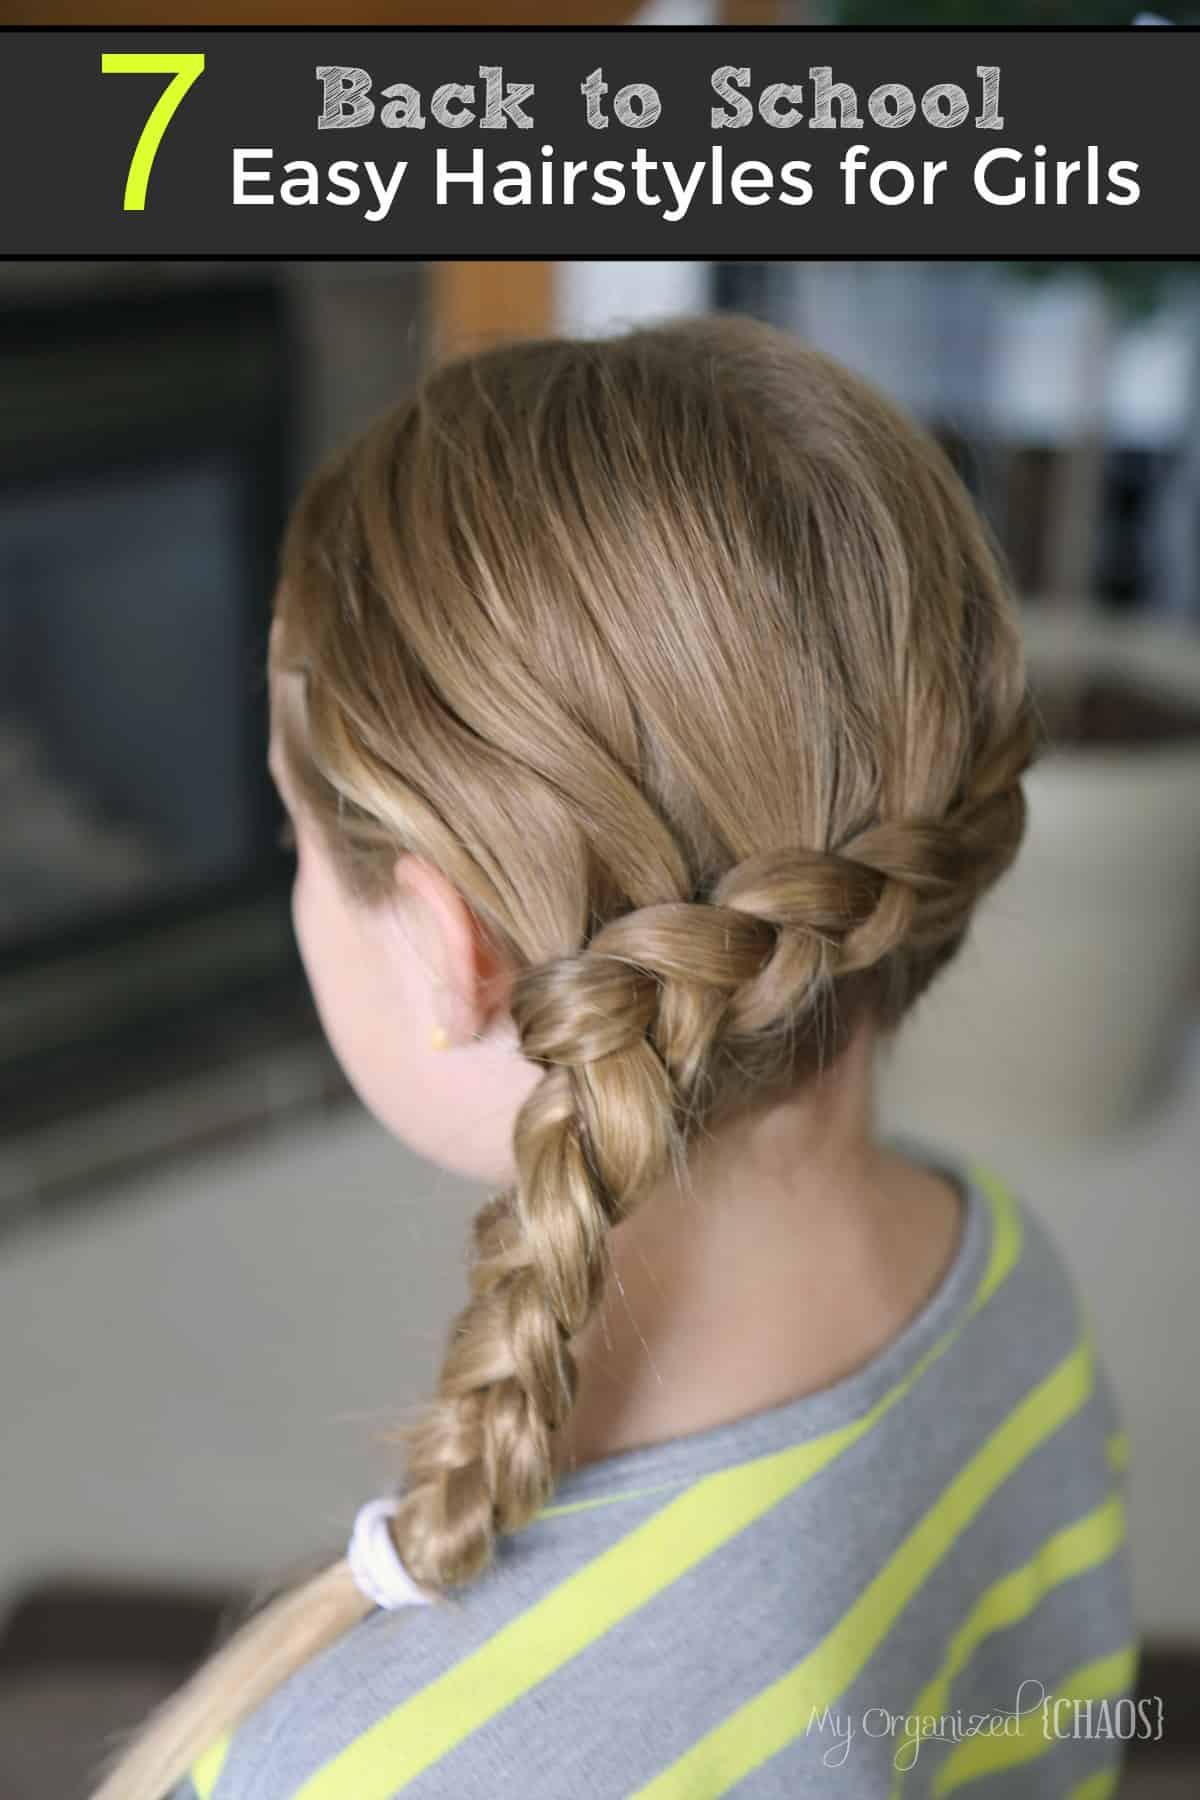 Best ideas about Cute Back To School Hairstyles For Black Hair . Save or Pin 7 Back to School Easy Hairstyles for Girls Now.